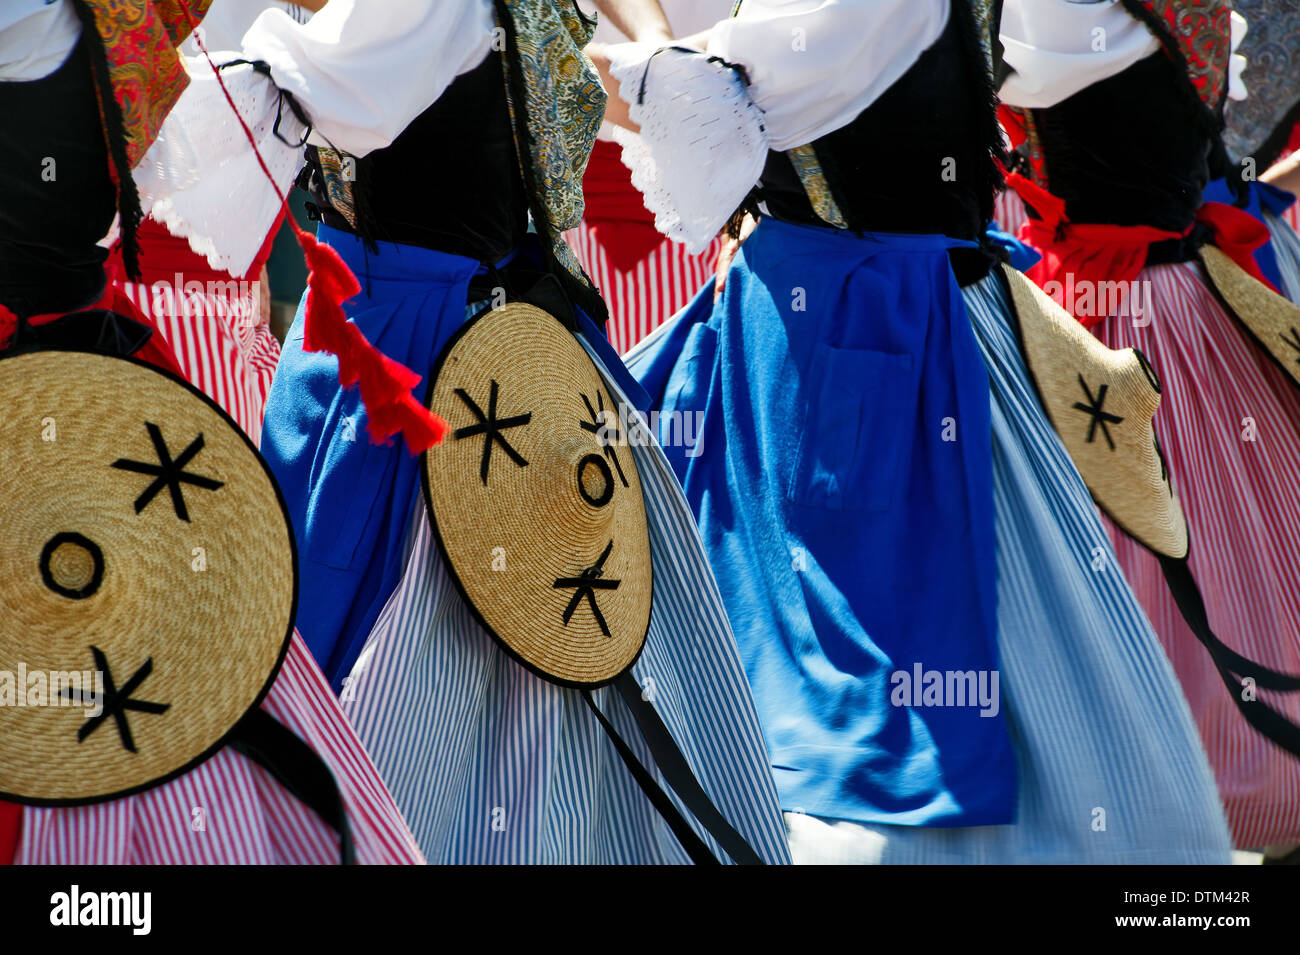 Europe, France, Alpes-Maritimes, Antibes. Traditional Provencal festival. Folk dance. Stock Photo